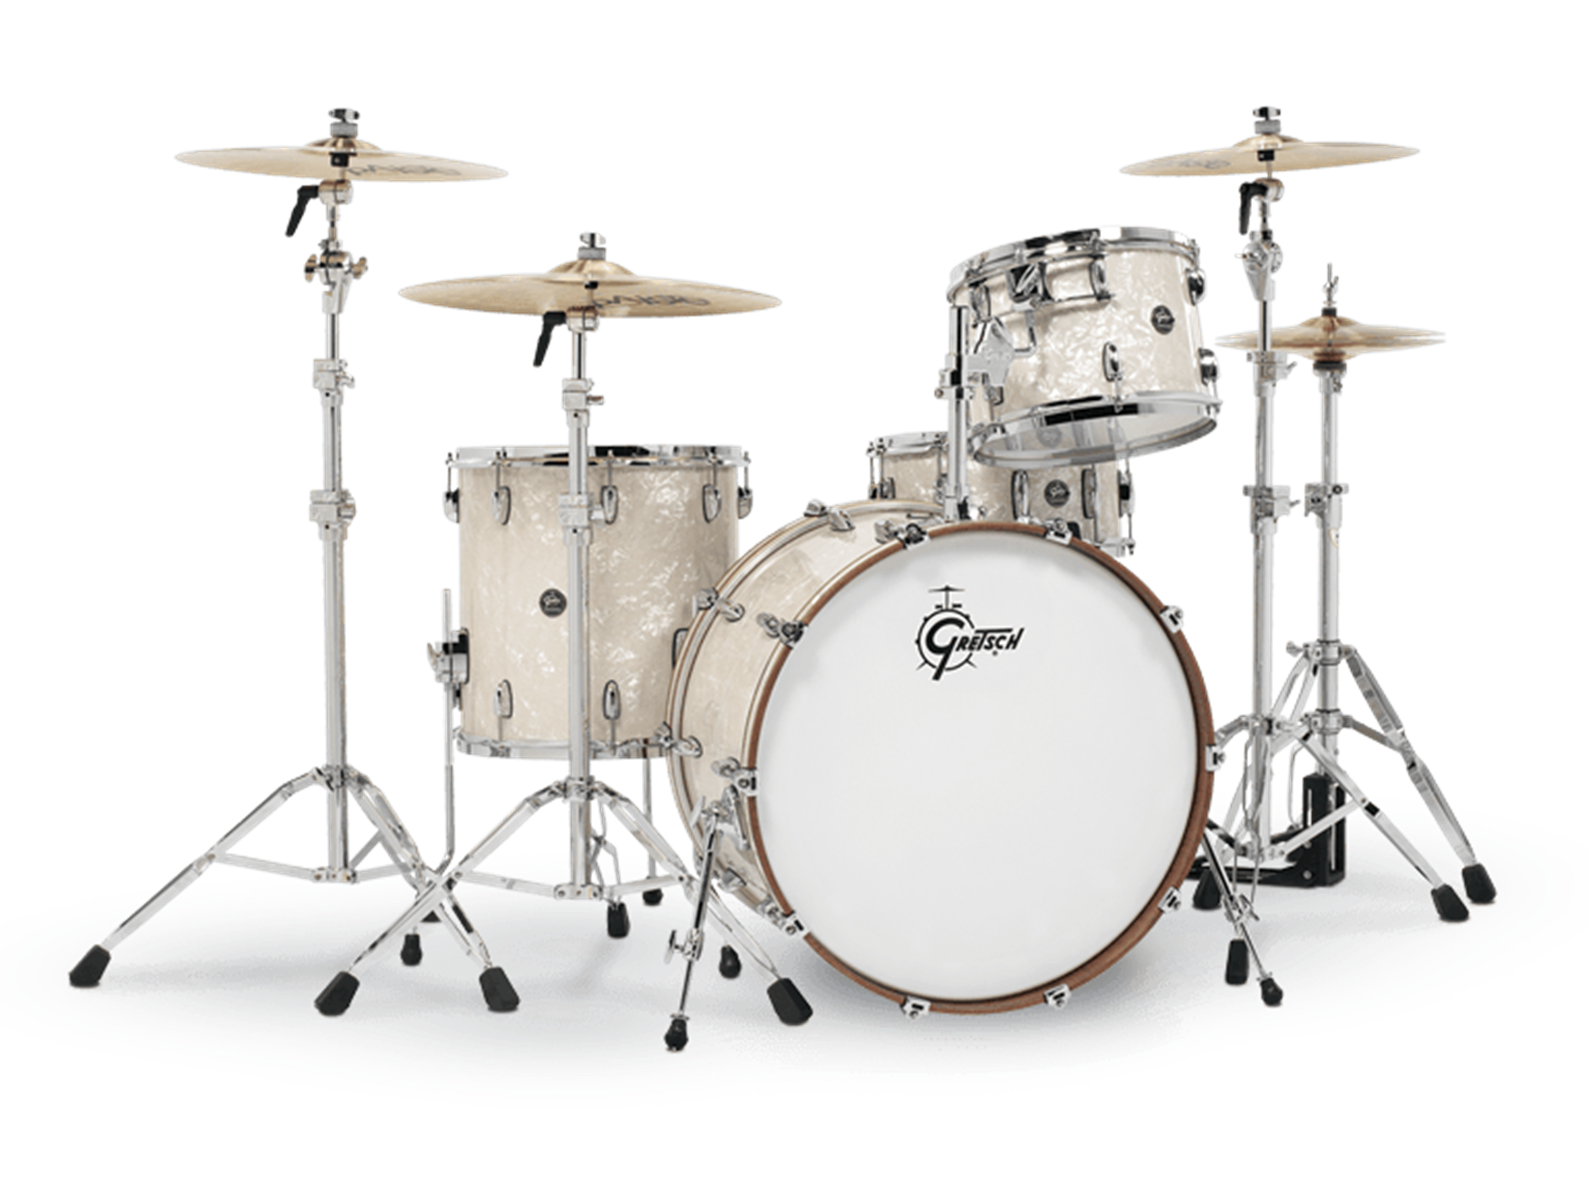 clip freeuse library Gretsch RN